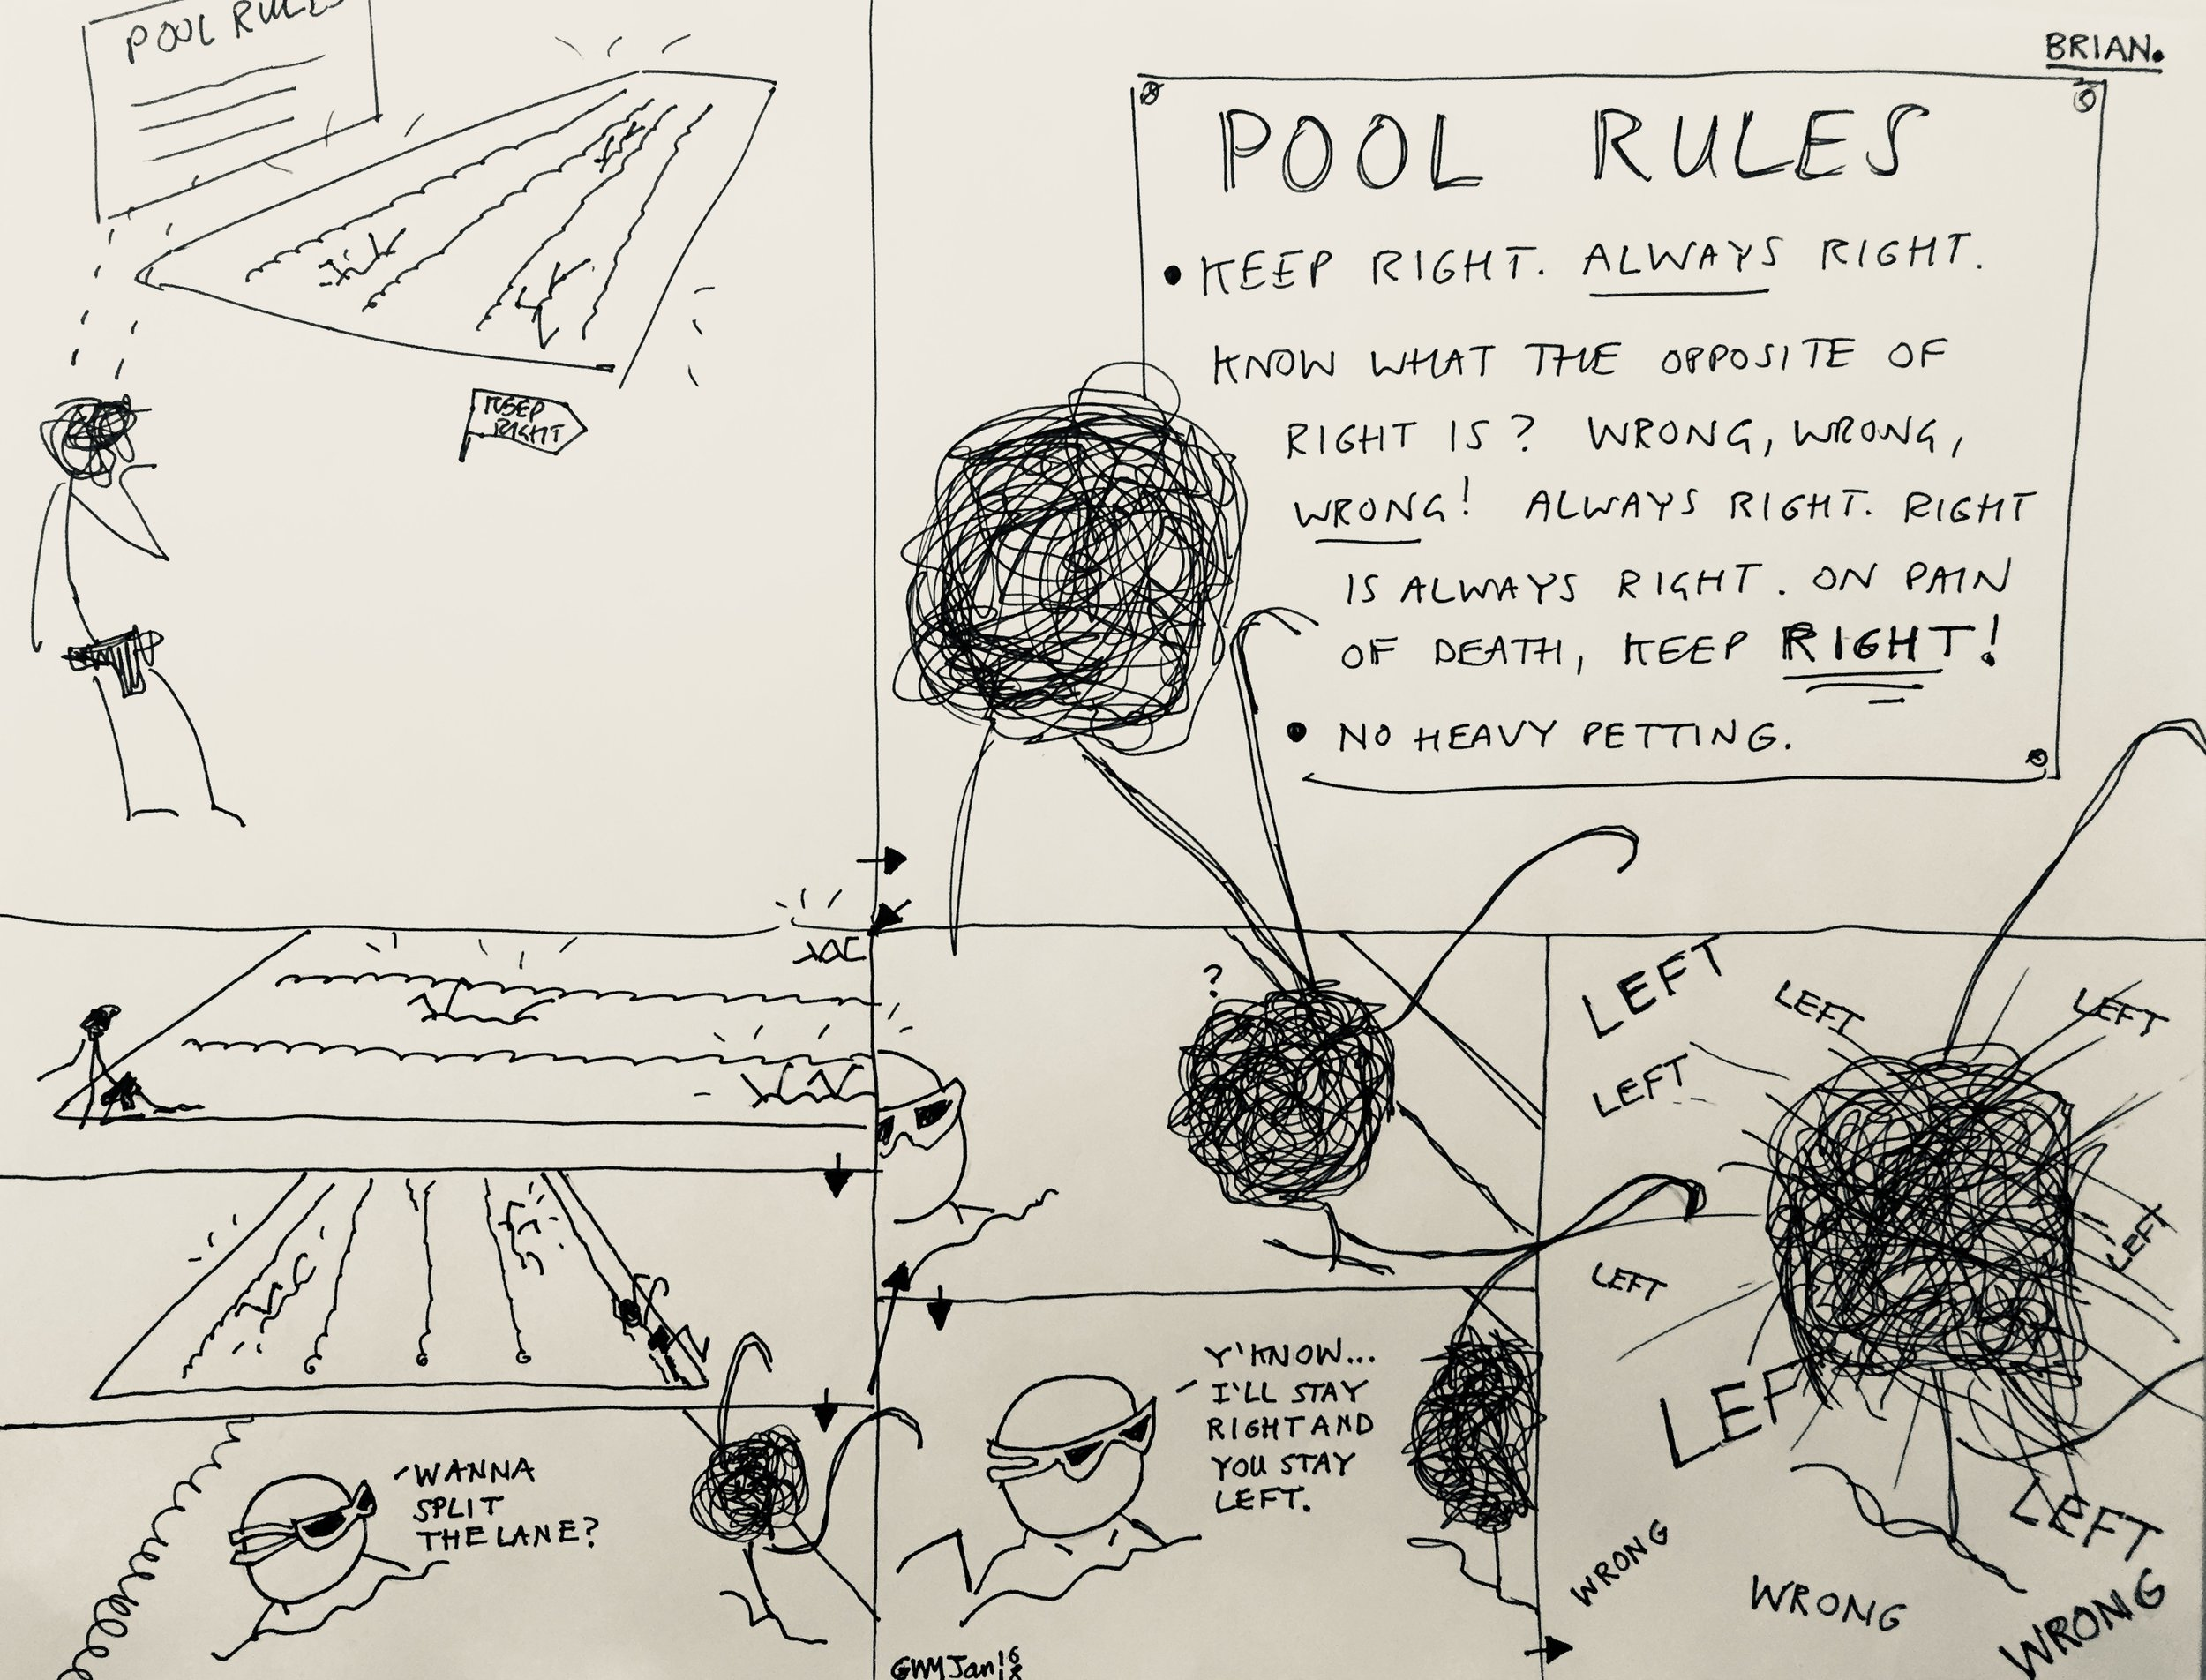 BRIAN - Pool Rules - Jan 17 2018.jpg